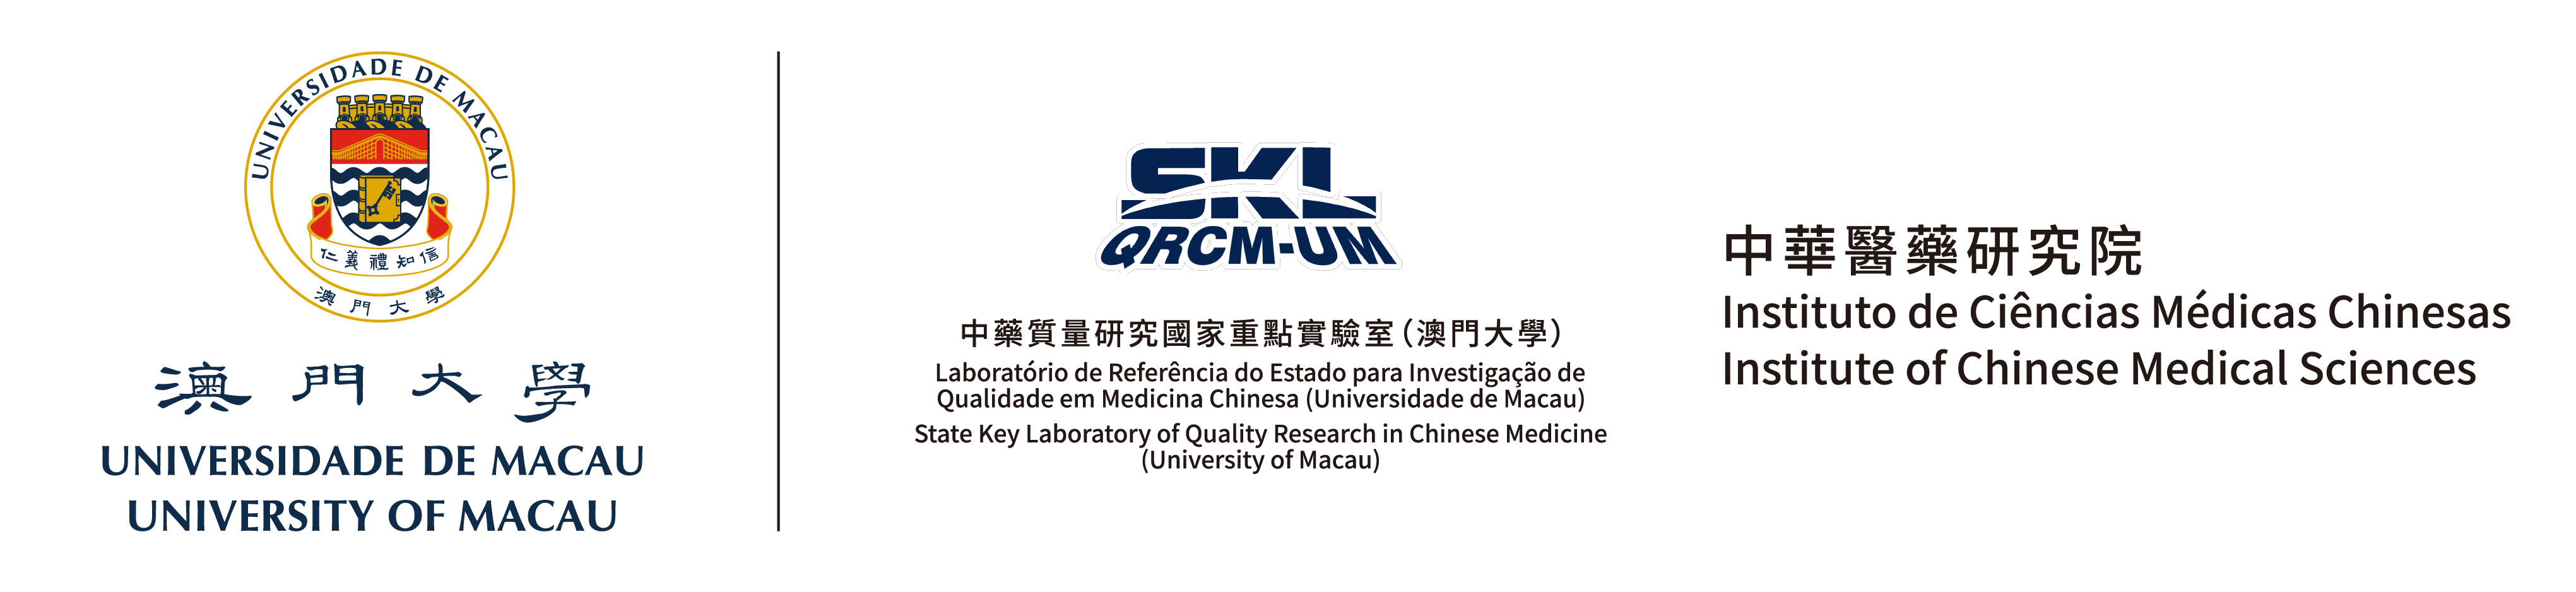 SKL-QRCM | ICMS | University of Macau Logo